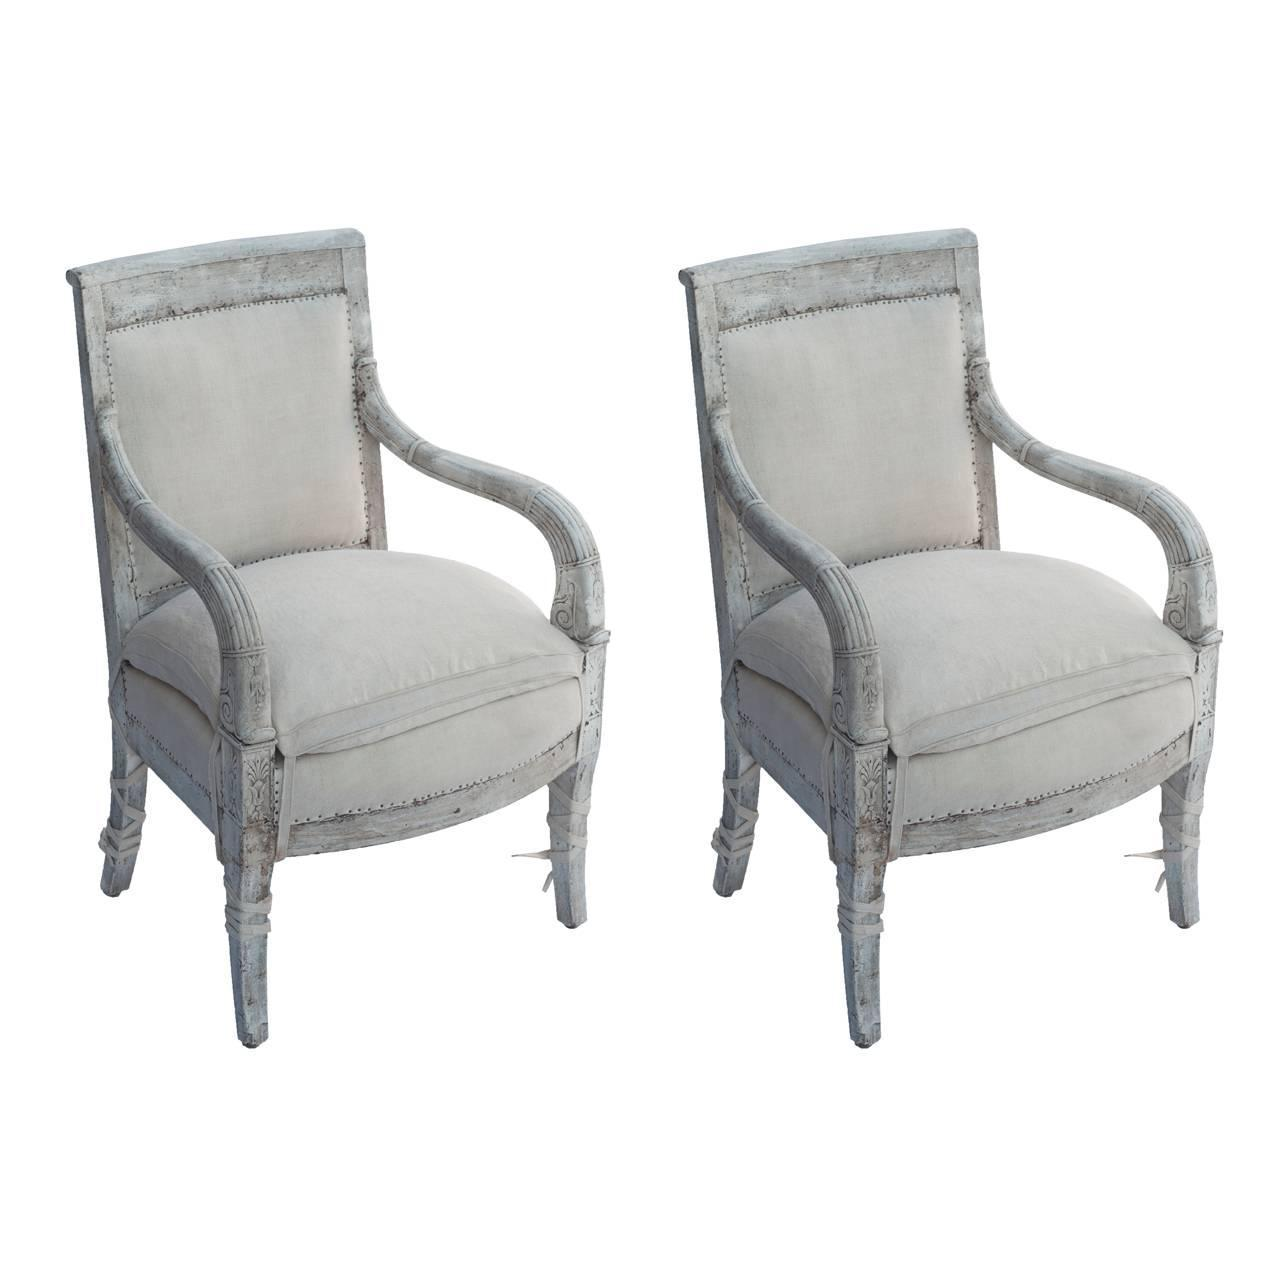 Restoration bergere set of fauteuils at 1stdibs - Fauteuil bergere moderne ...